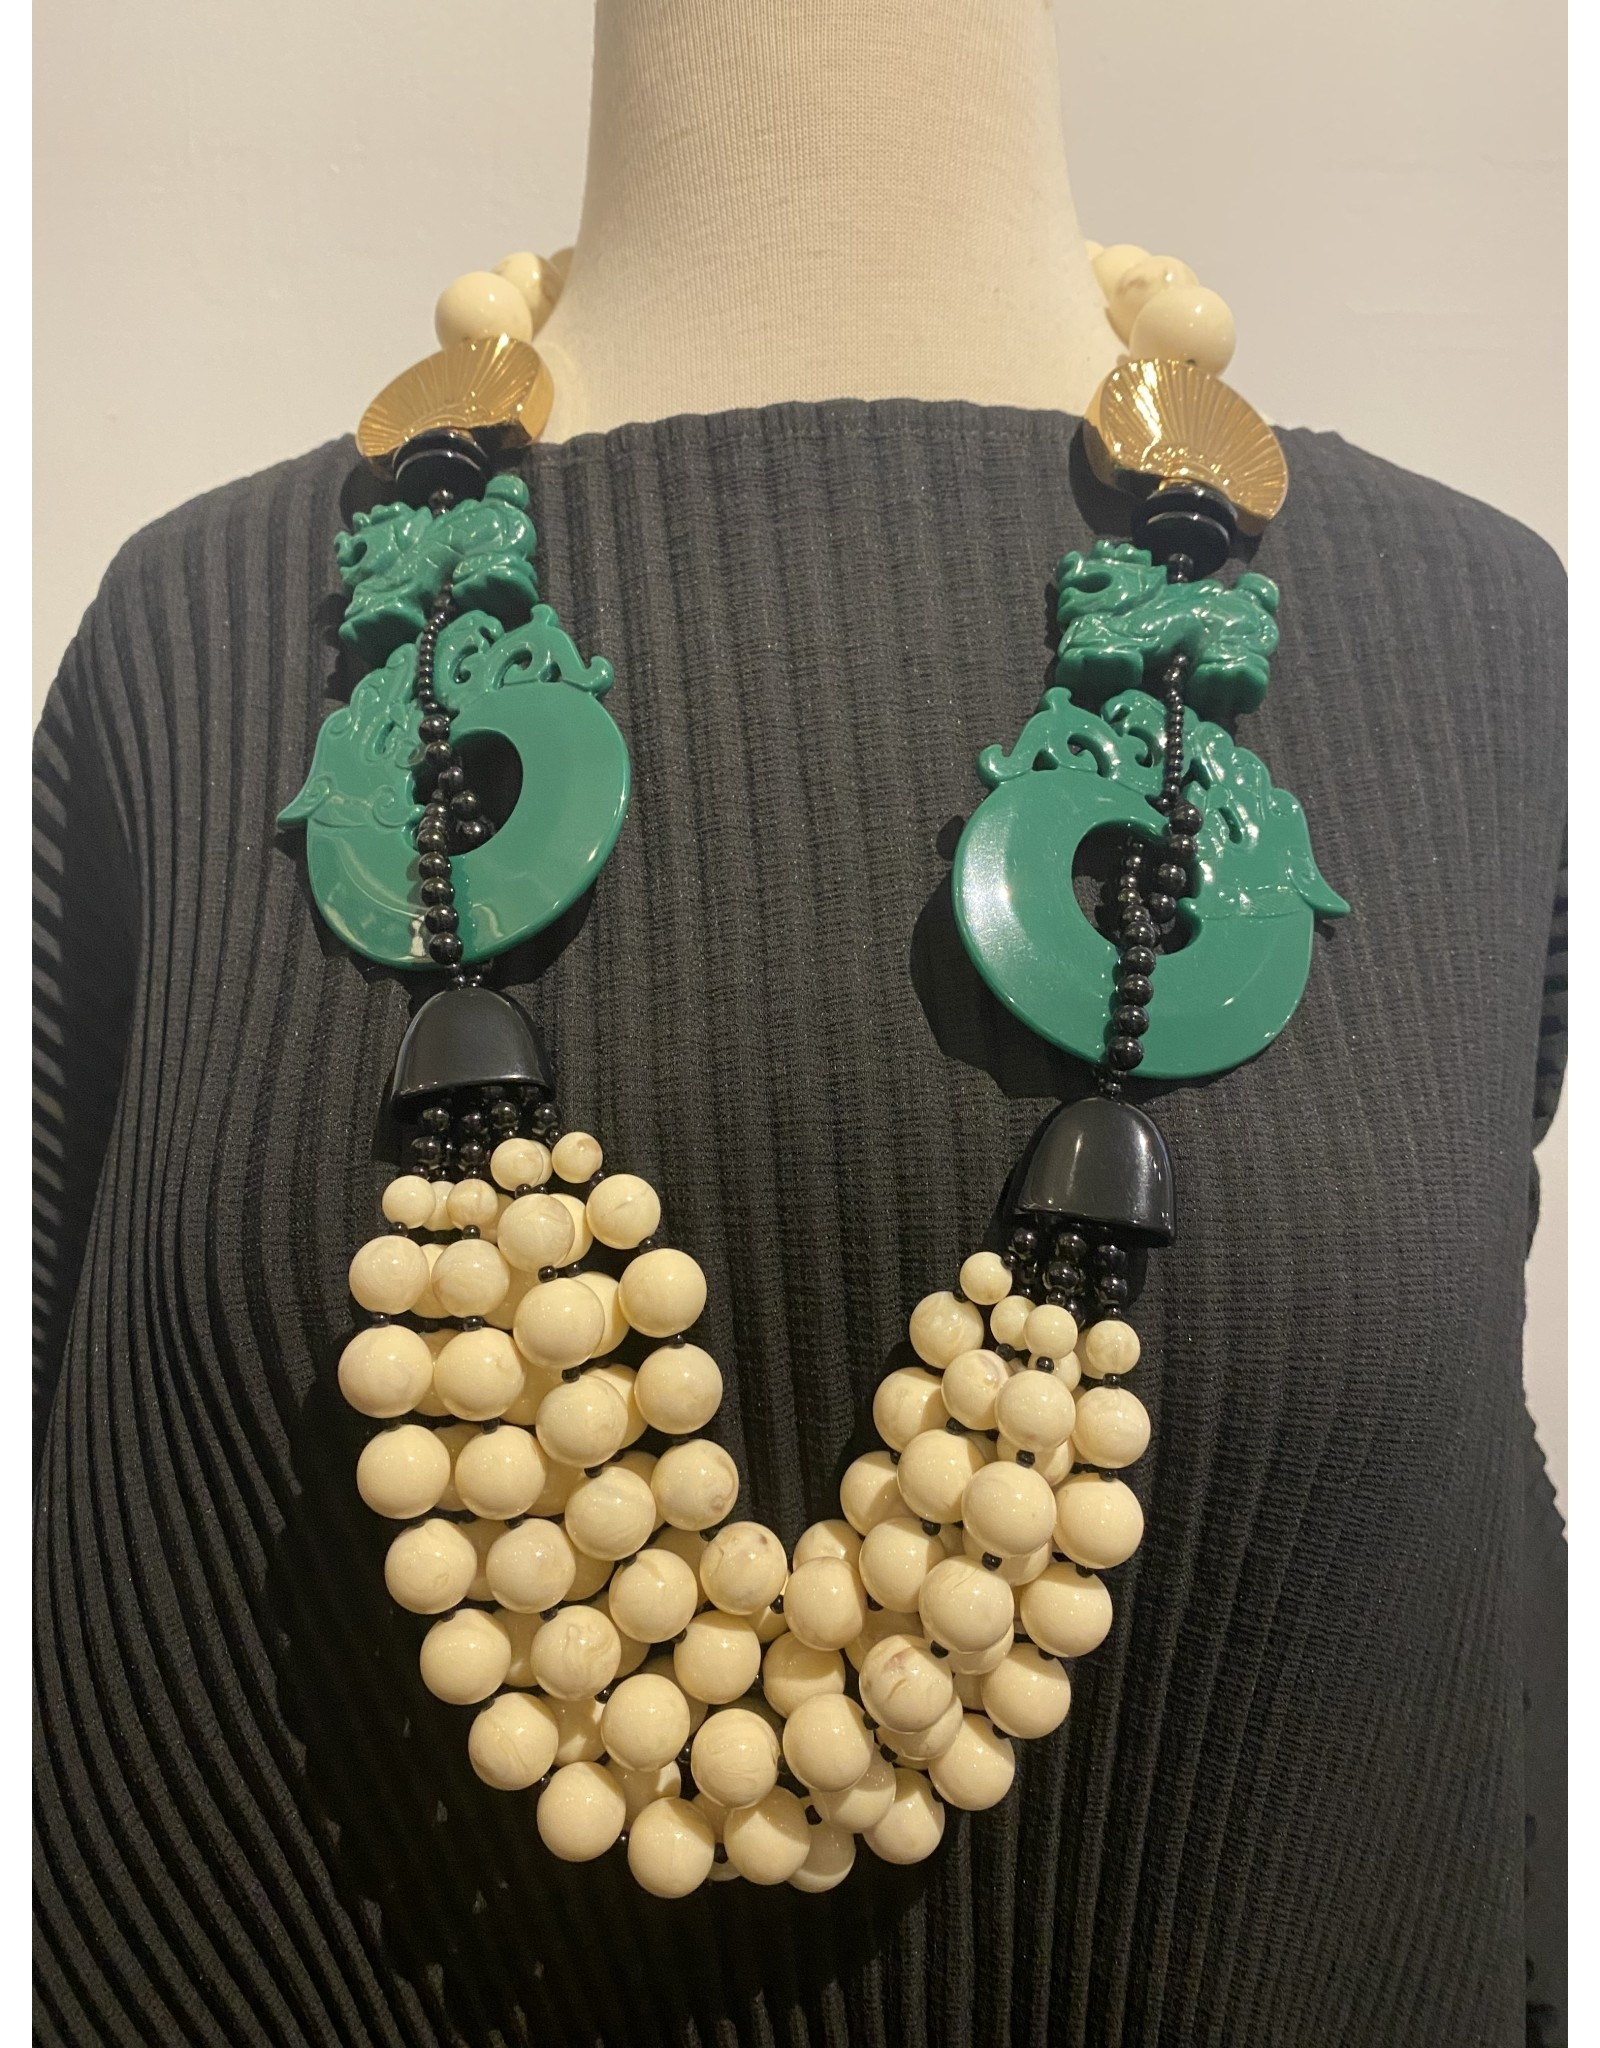 Angela Caputi ang/8858/new/oriente/wt/beads/grndrag